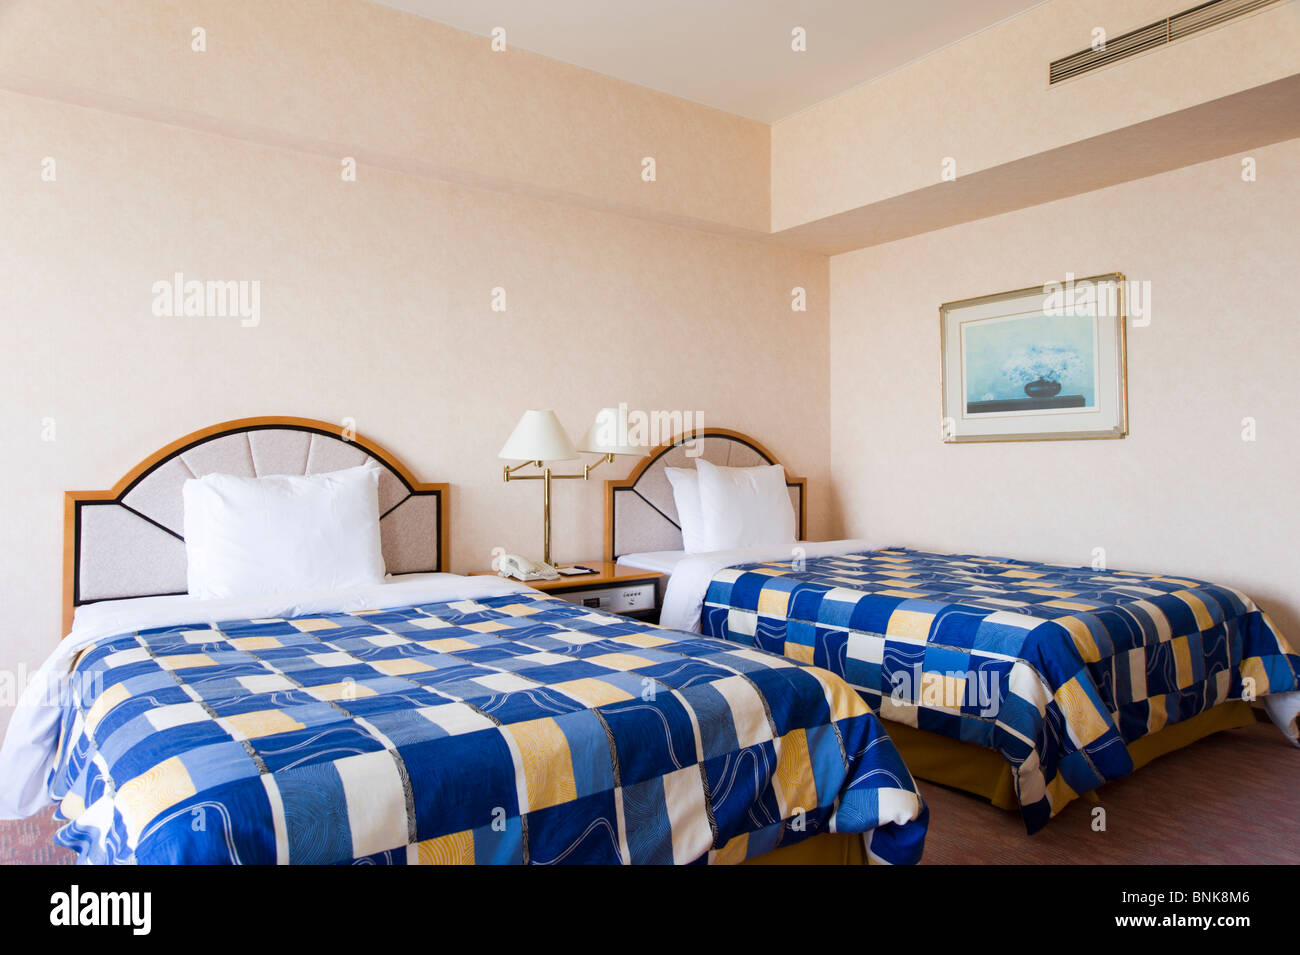 Hilton Hotel room with twin beds - Stock Image